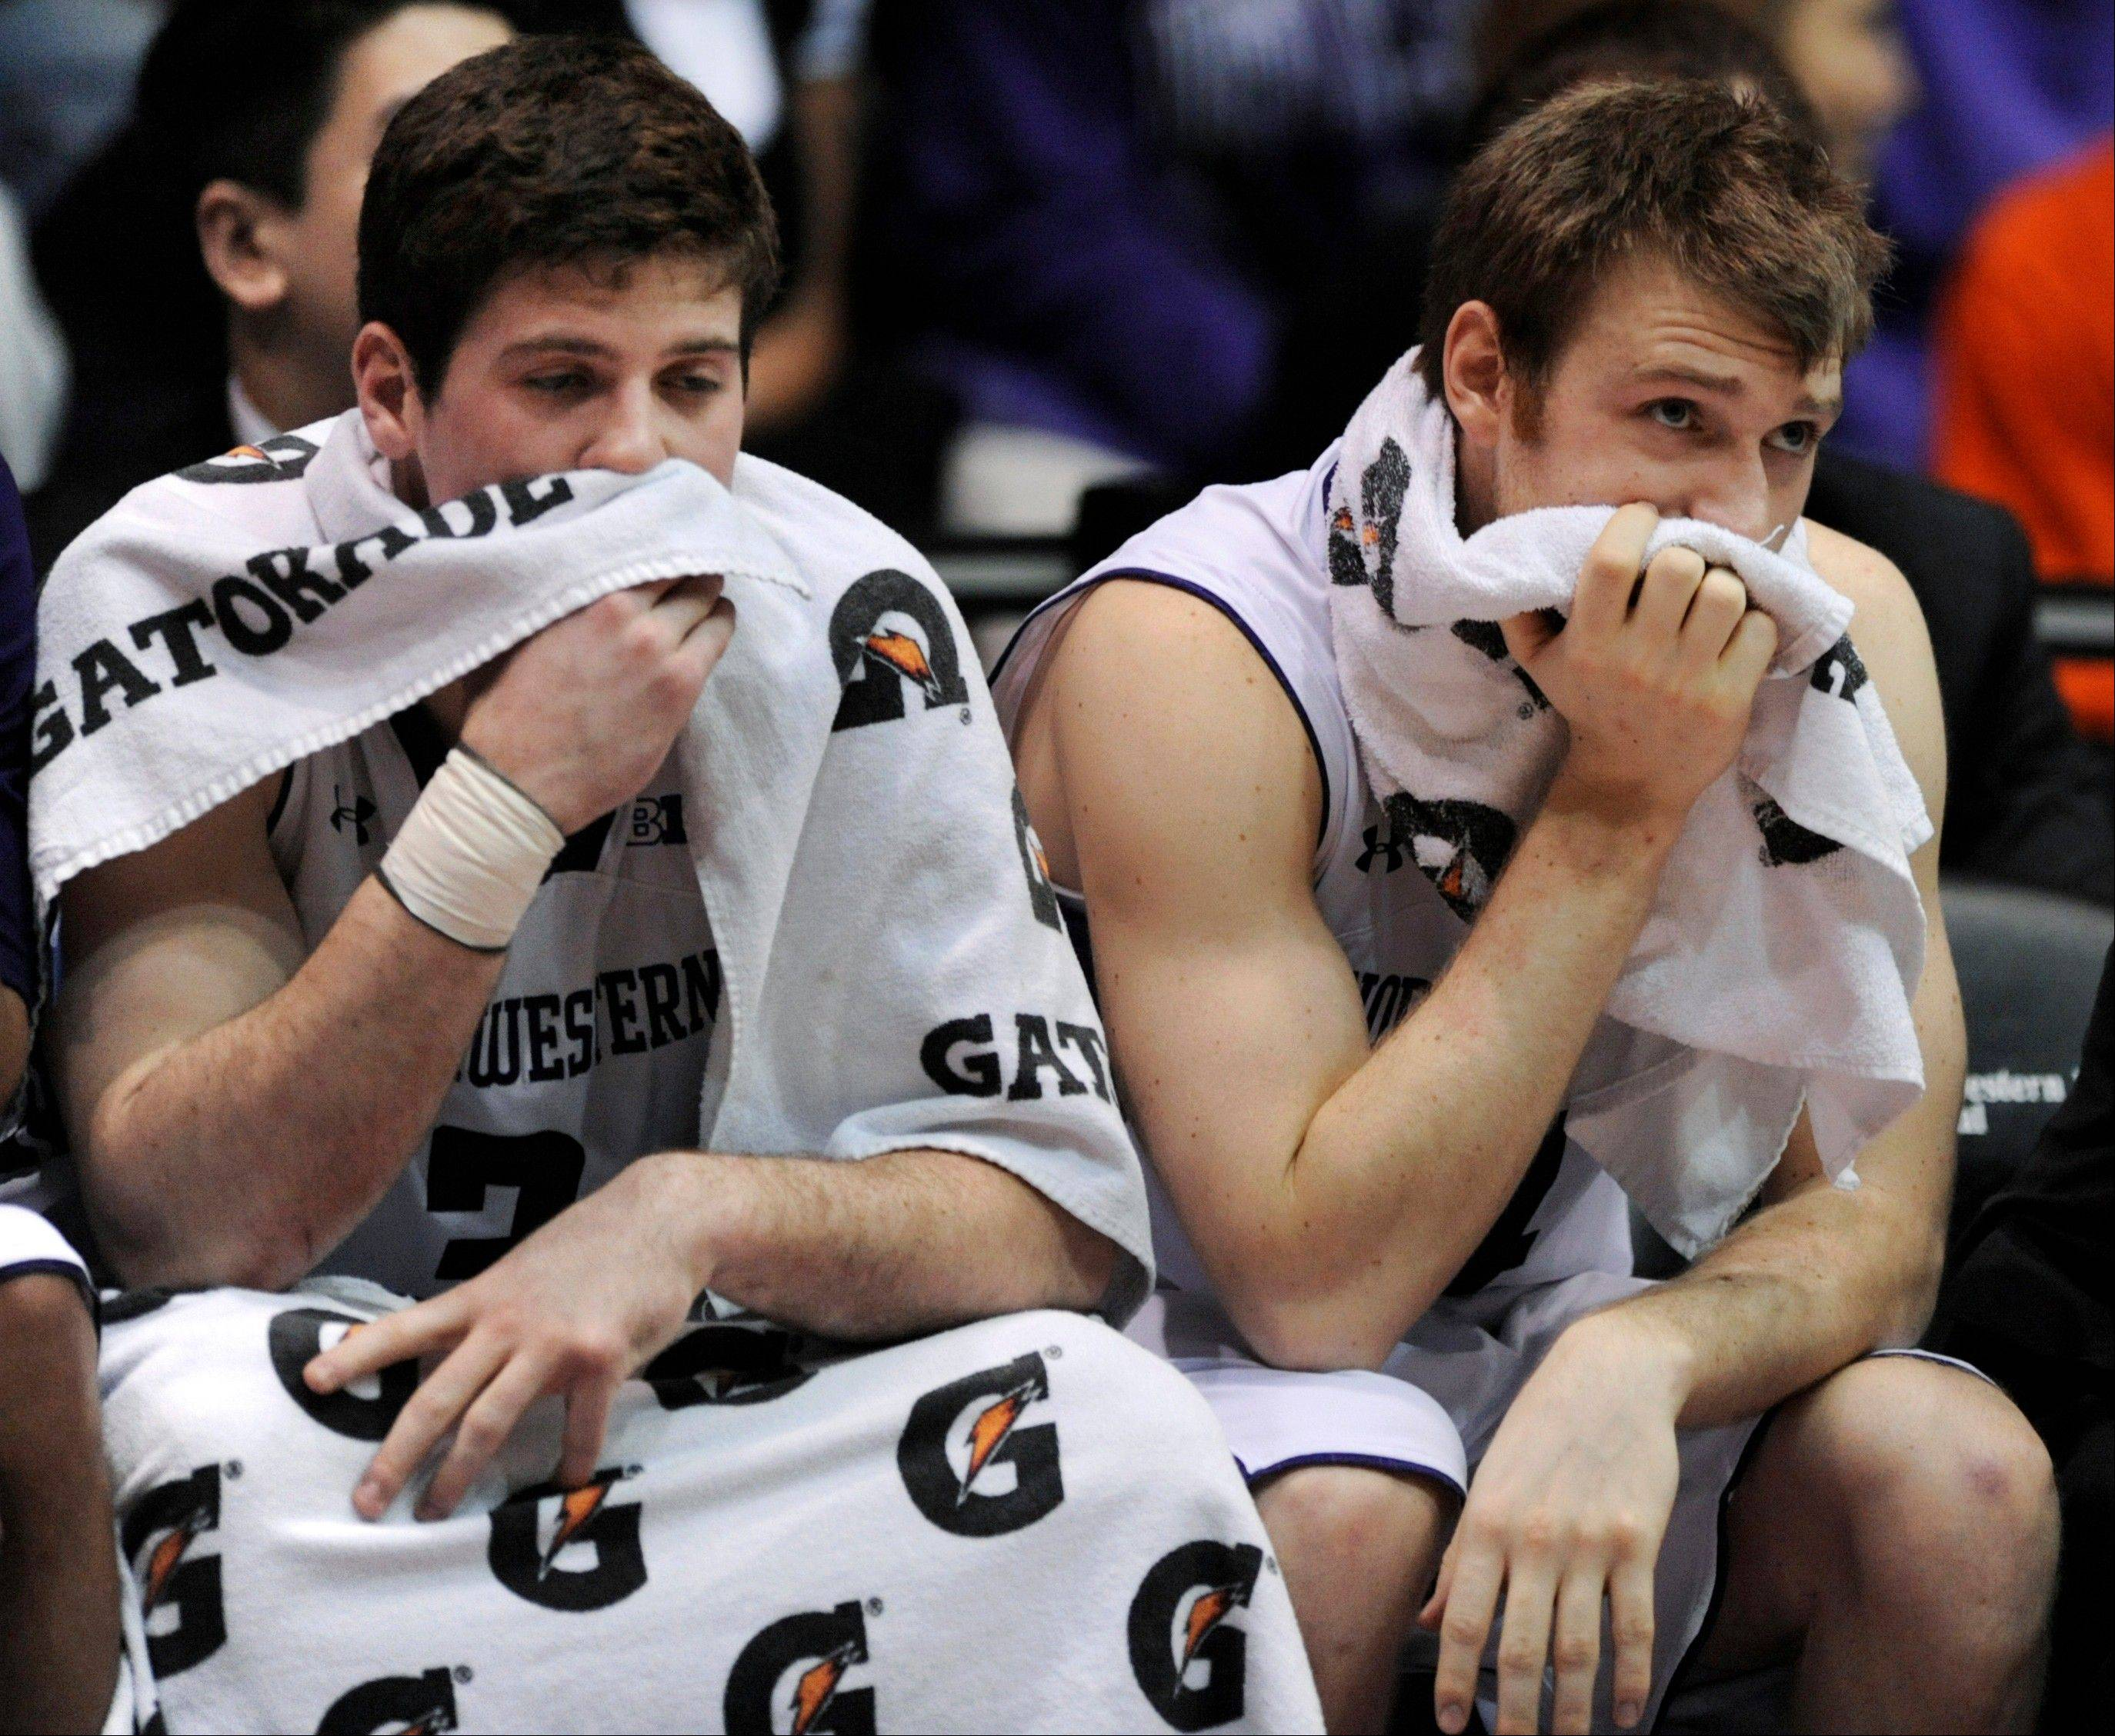 Northwestern�s Dave Sobolewski left, and Alex Marcotullio sit on the bench during the second half against Illinois, Sunday. Illinois won 62-41.